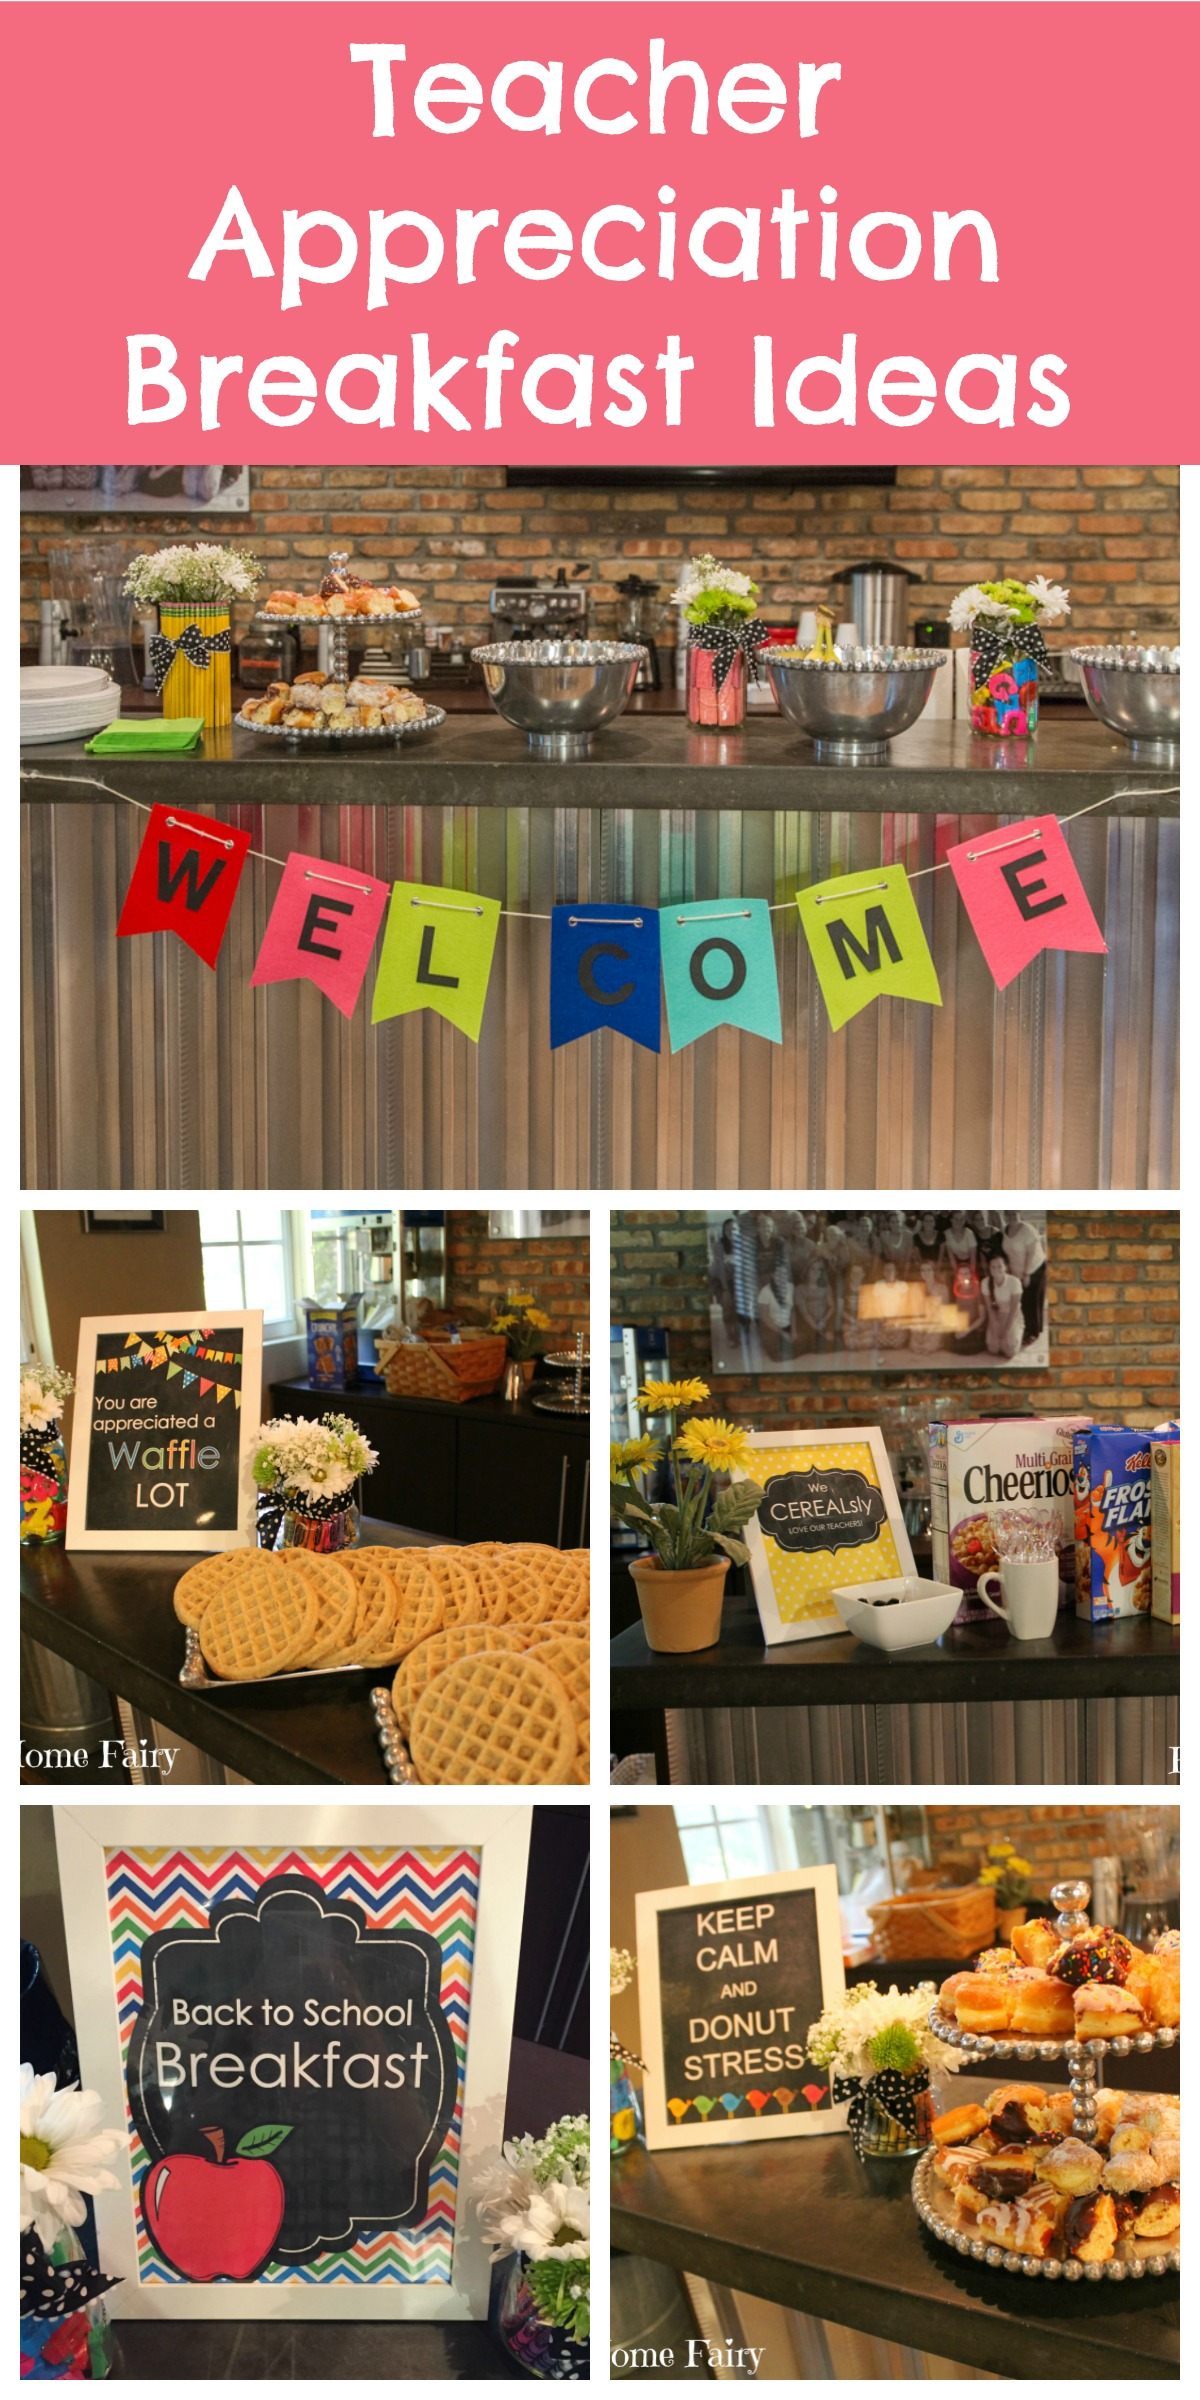 Classroom Recognition Ideas ~ Days of teacher appreciation breakfast ideas happy